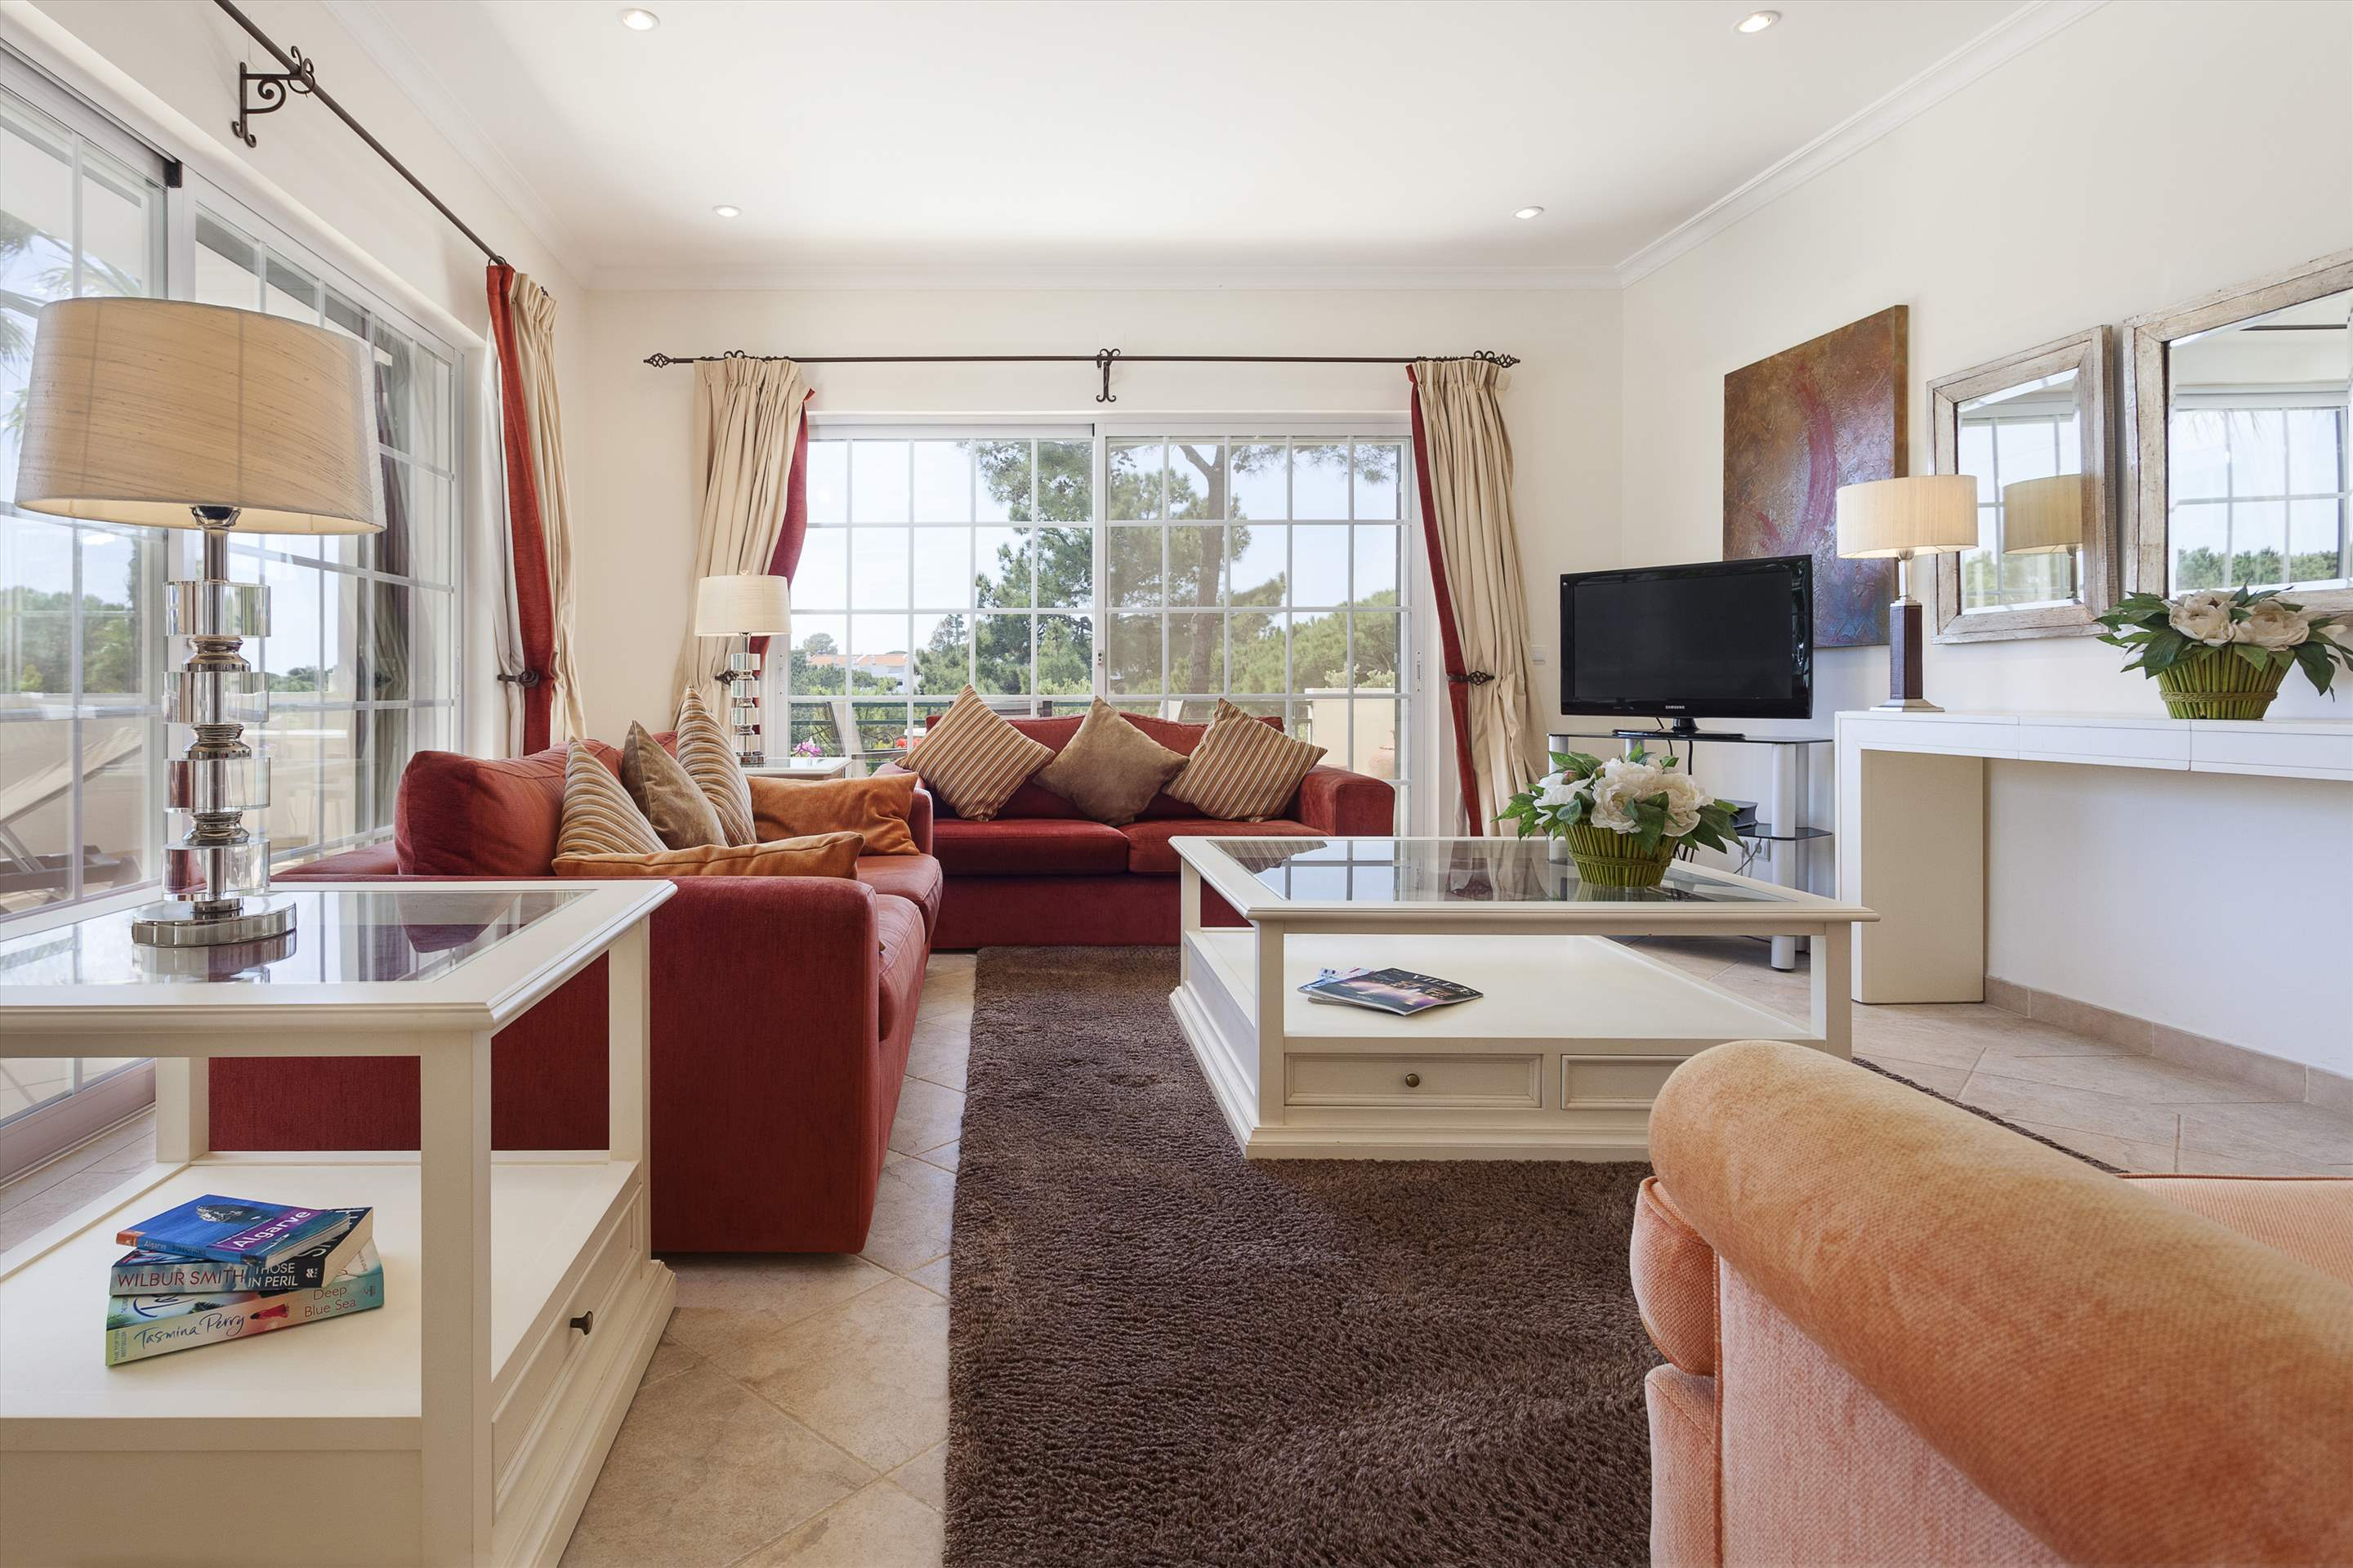 Apartment Romaine, 3 bedroom apartment in Vale do Lobo, Algarve Photo #3